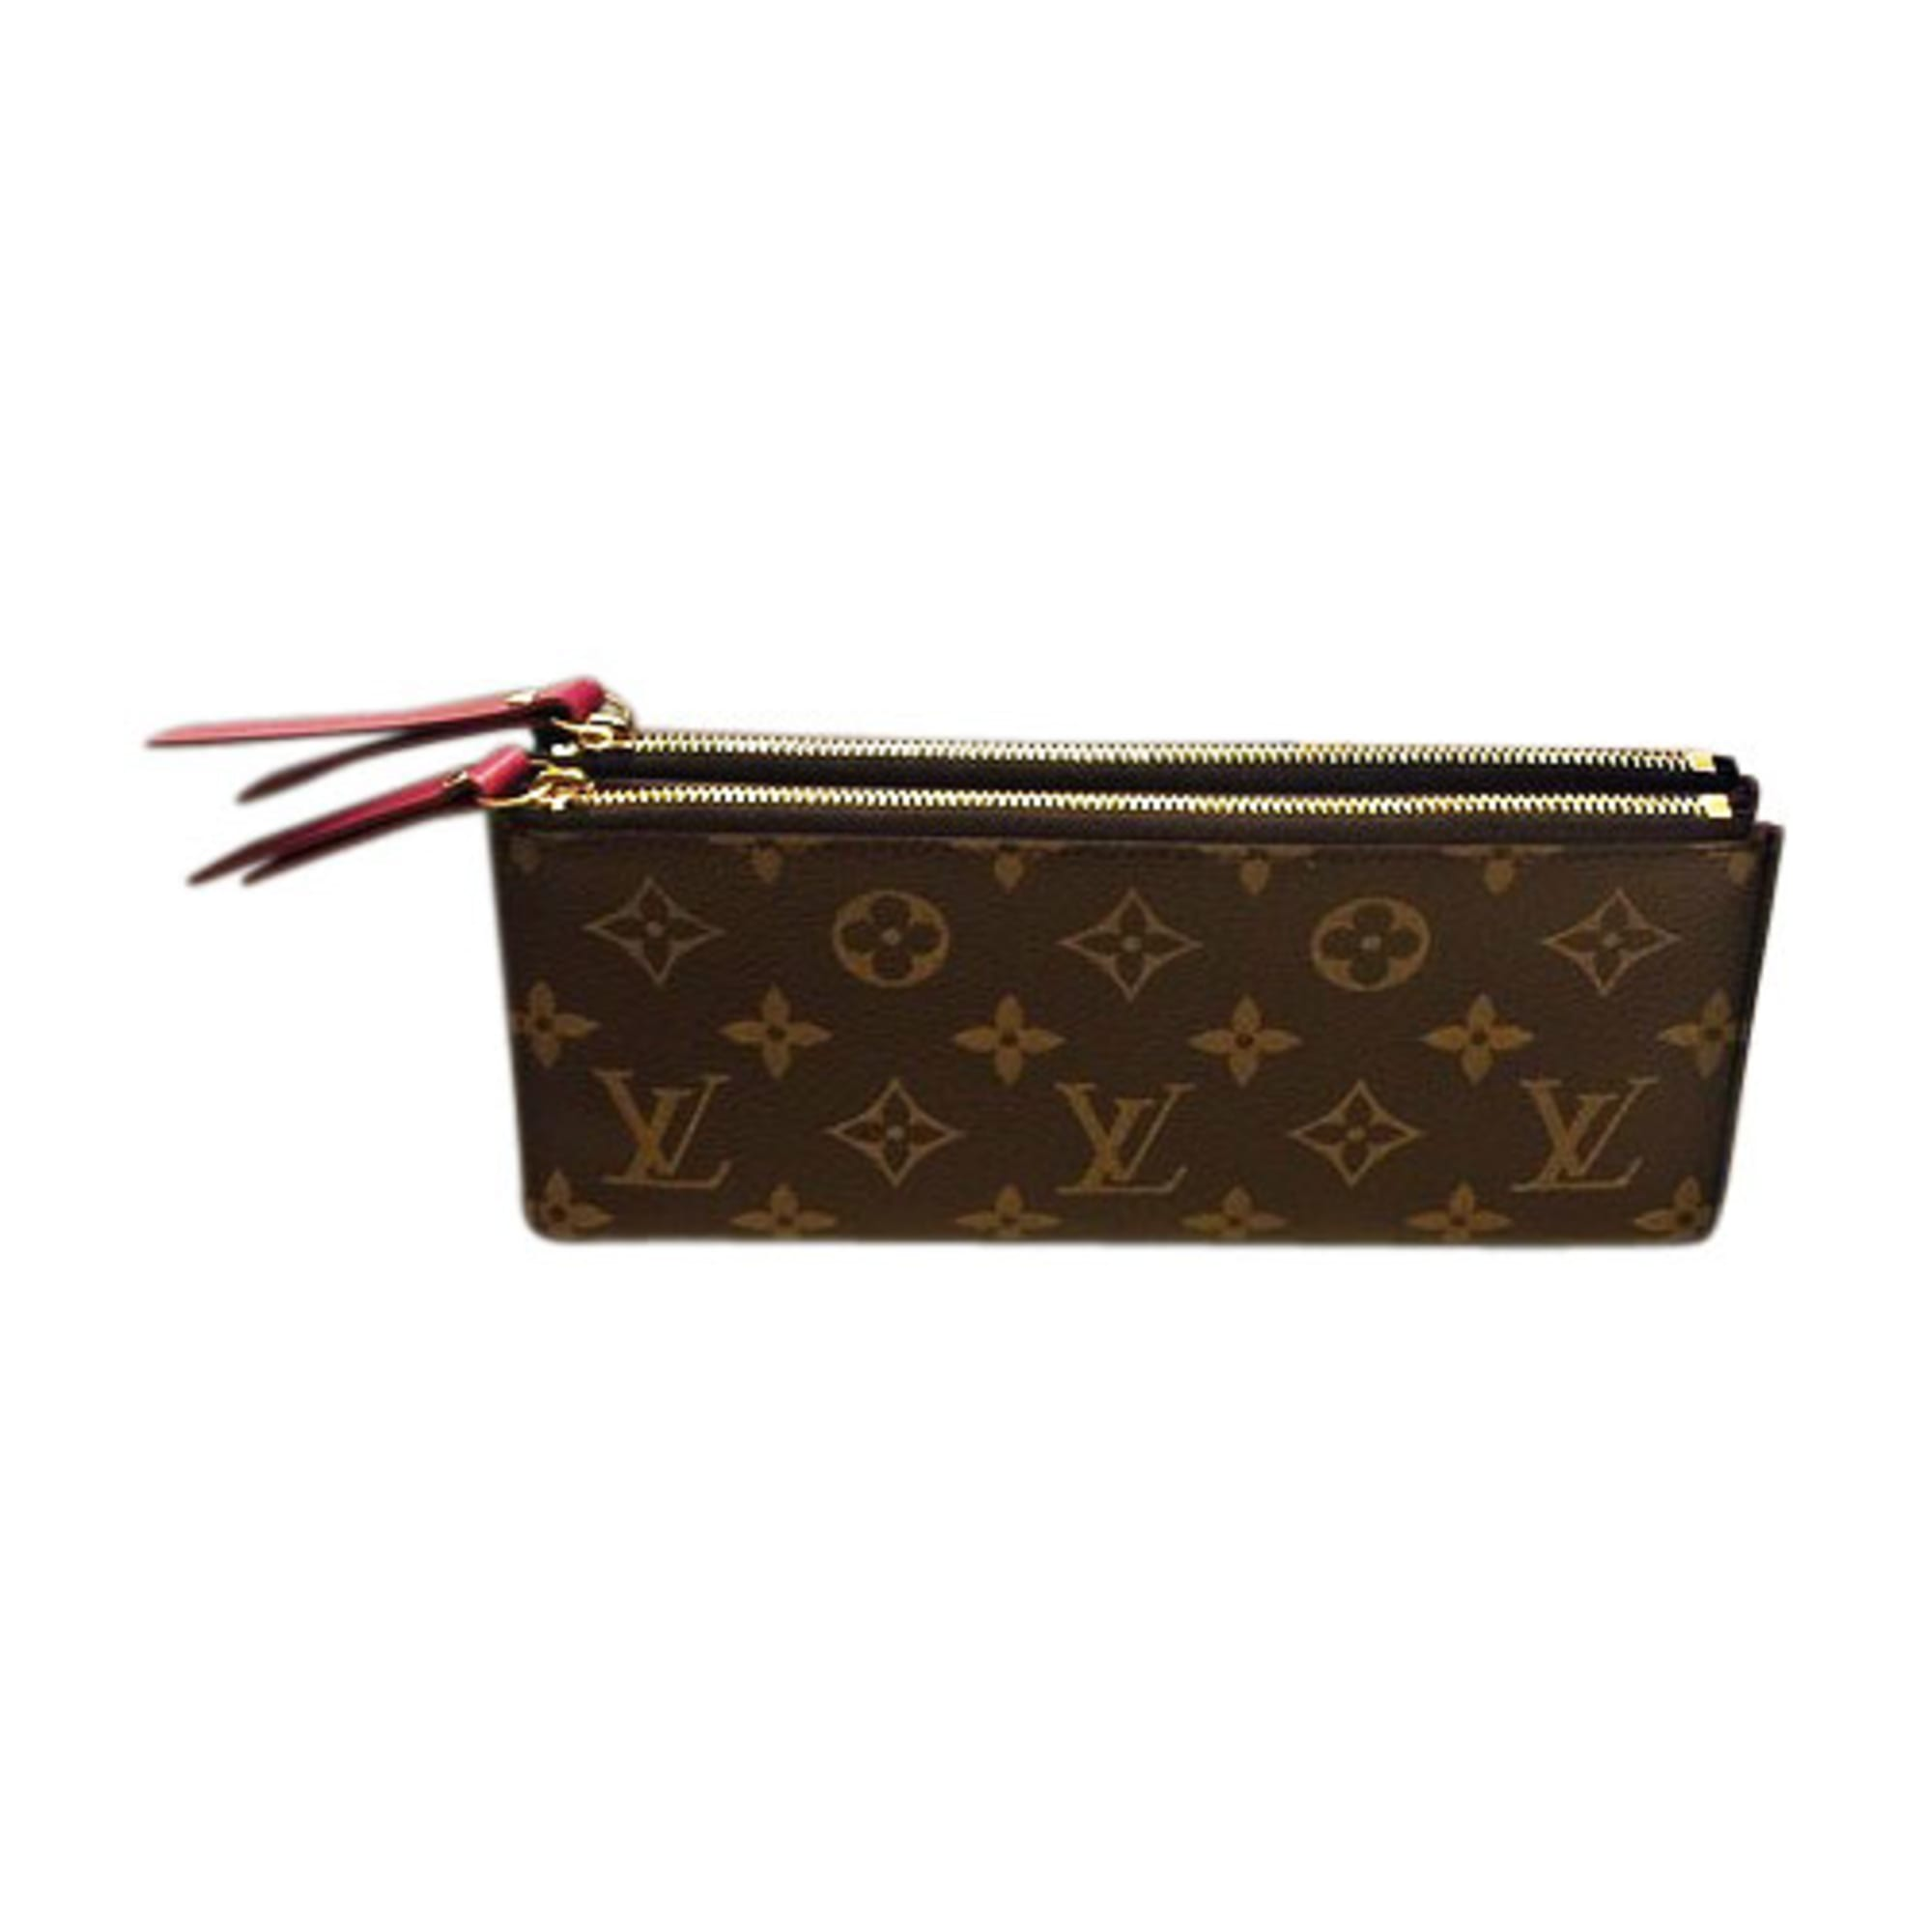 Portefeuille LOUIS VUITTON marron vendu par Zambak01 - 5132733 16a9dfbcc1d